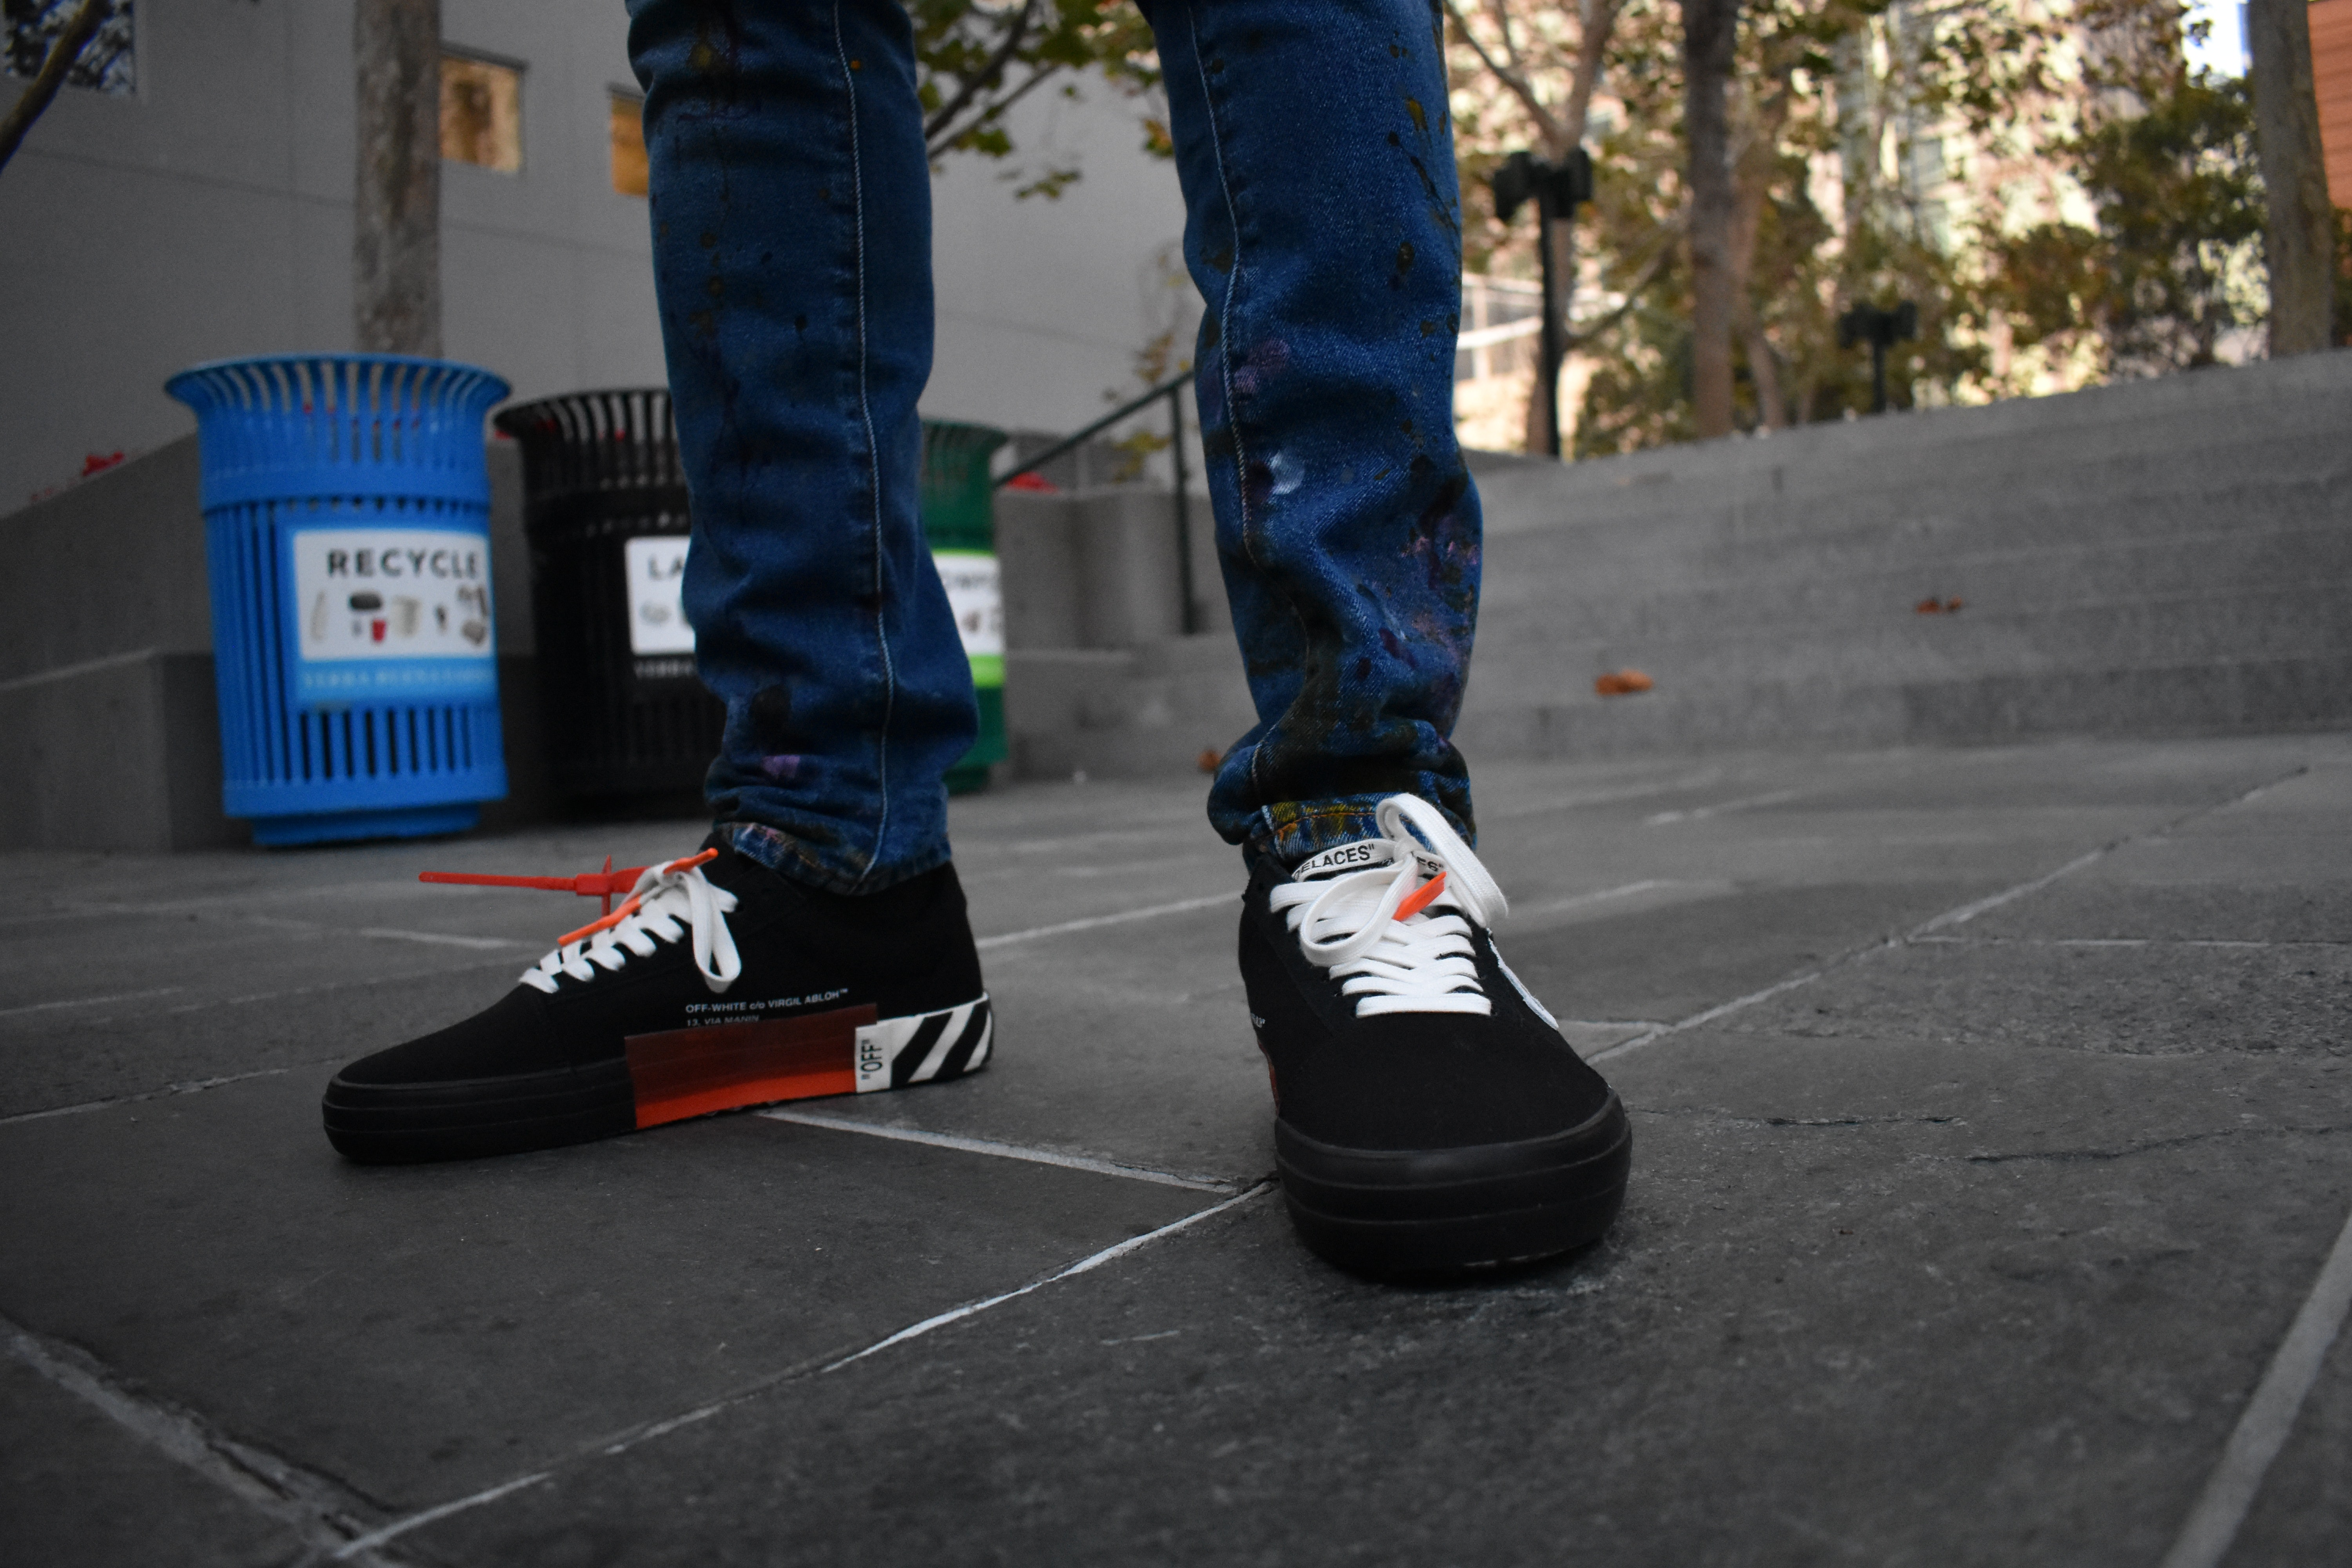 Best Roller Skating Shoes For Beginners